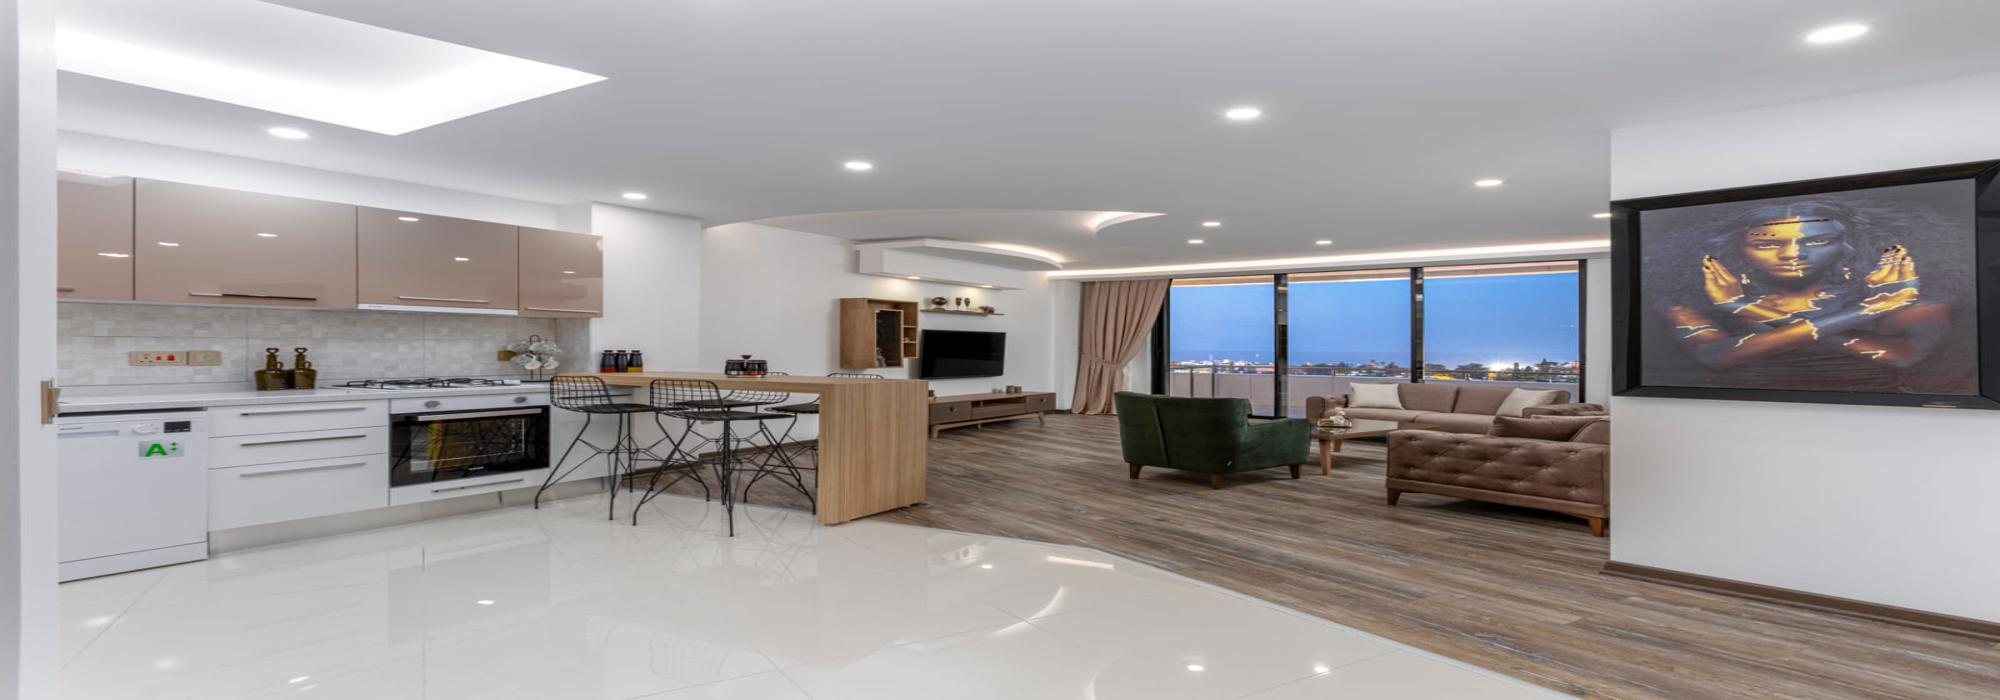 Brand-New Bright 2 Bedroom Penthouse For Rent Location Center Girne (your retreat from the modern world)